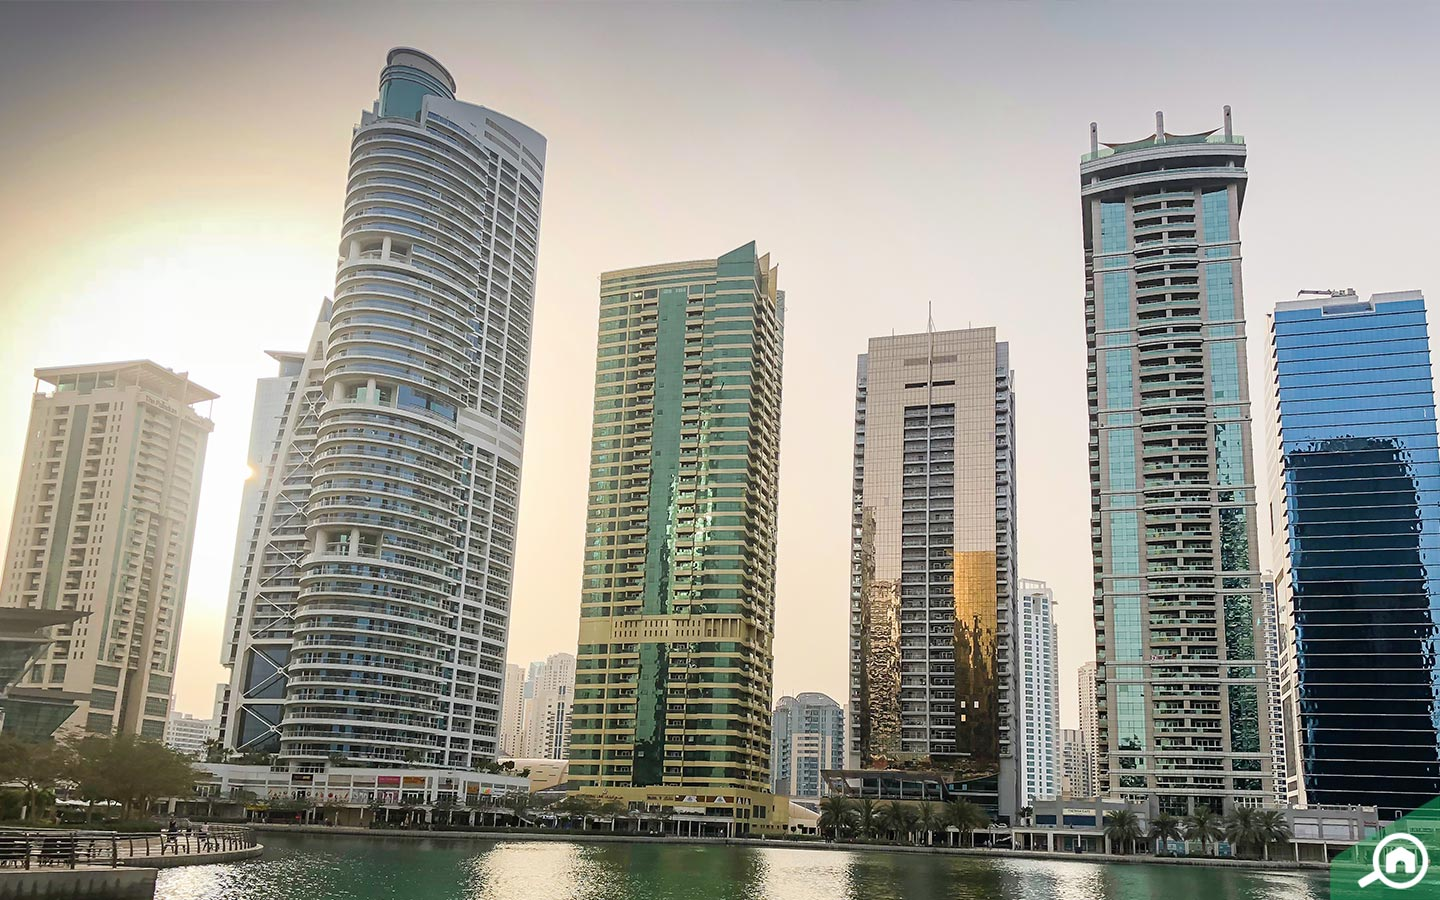 JLT flats with waterfront views